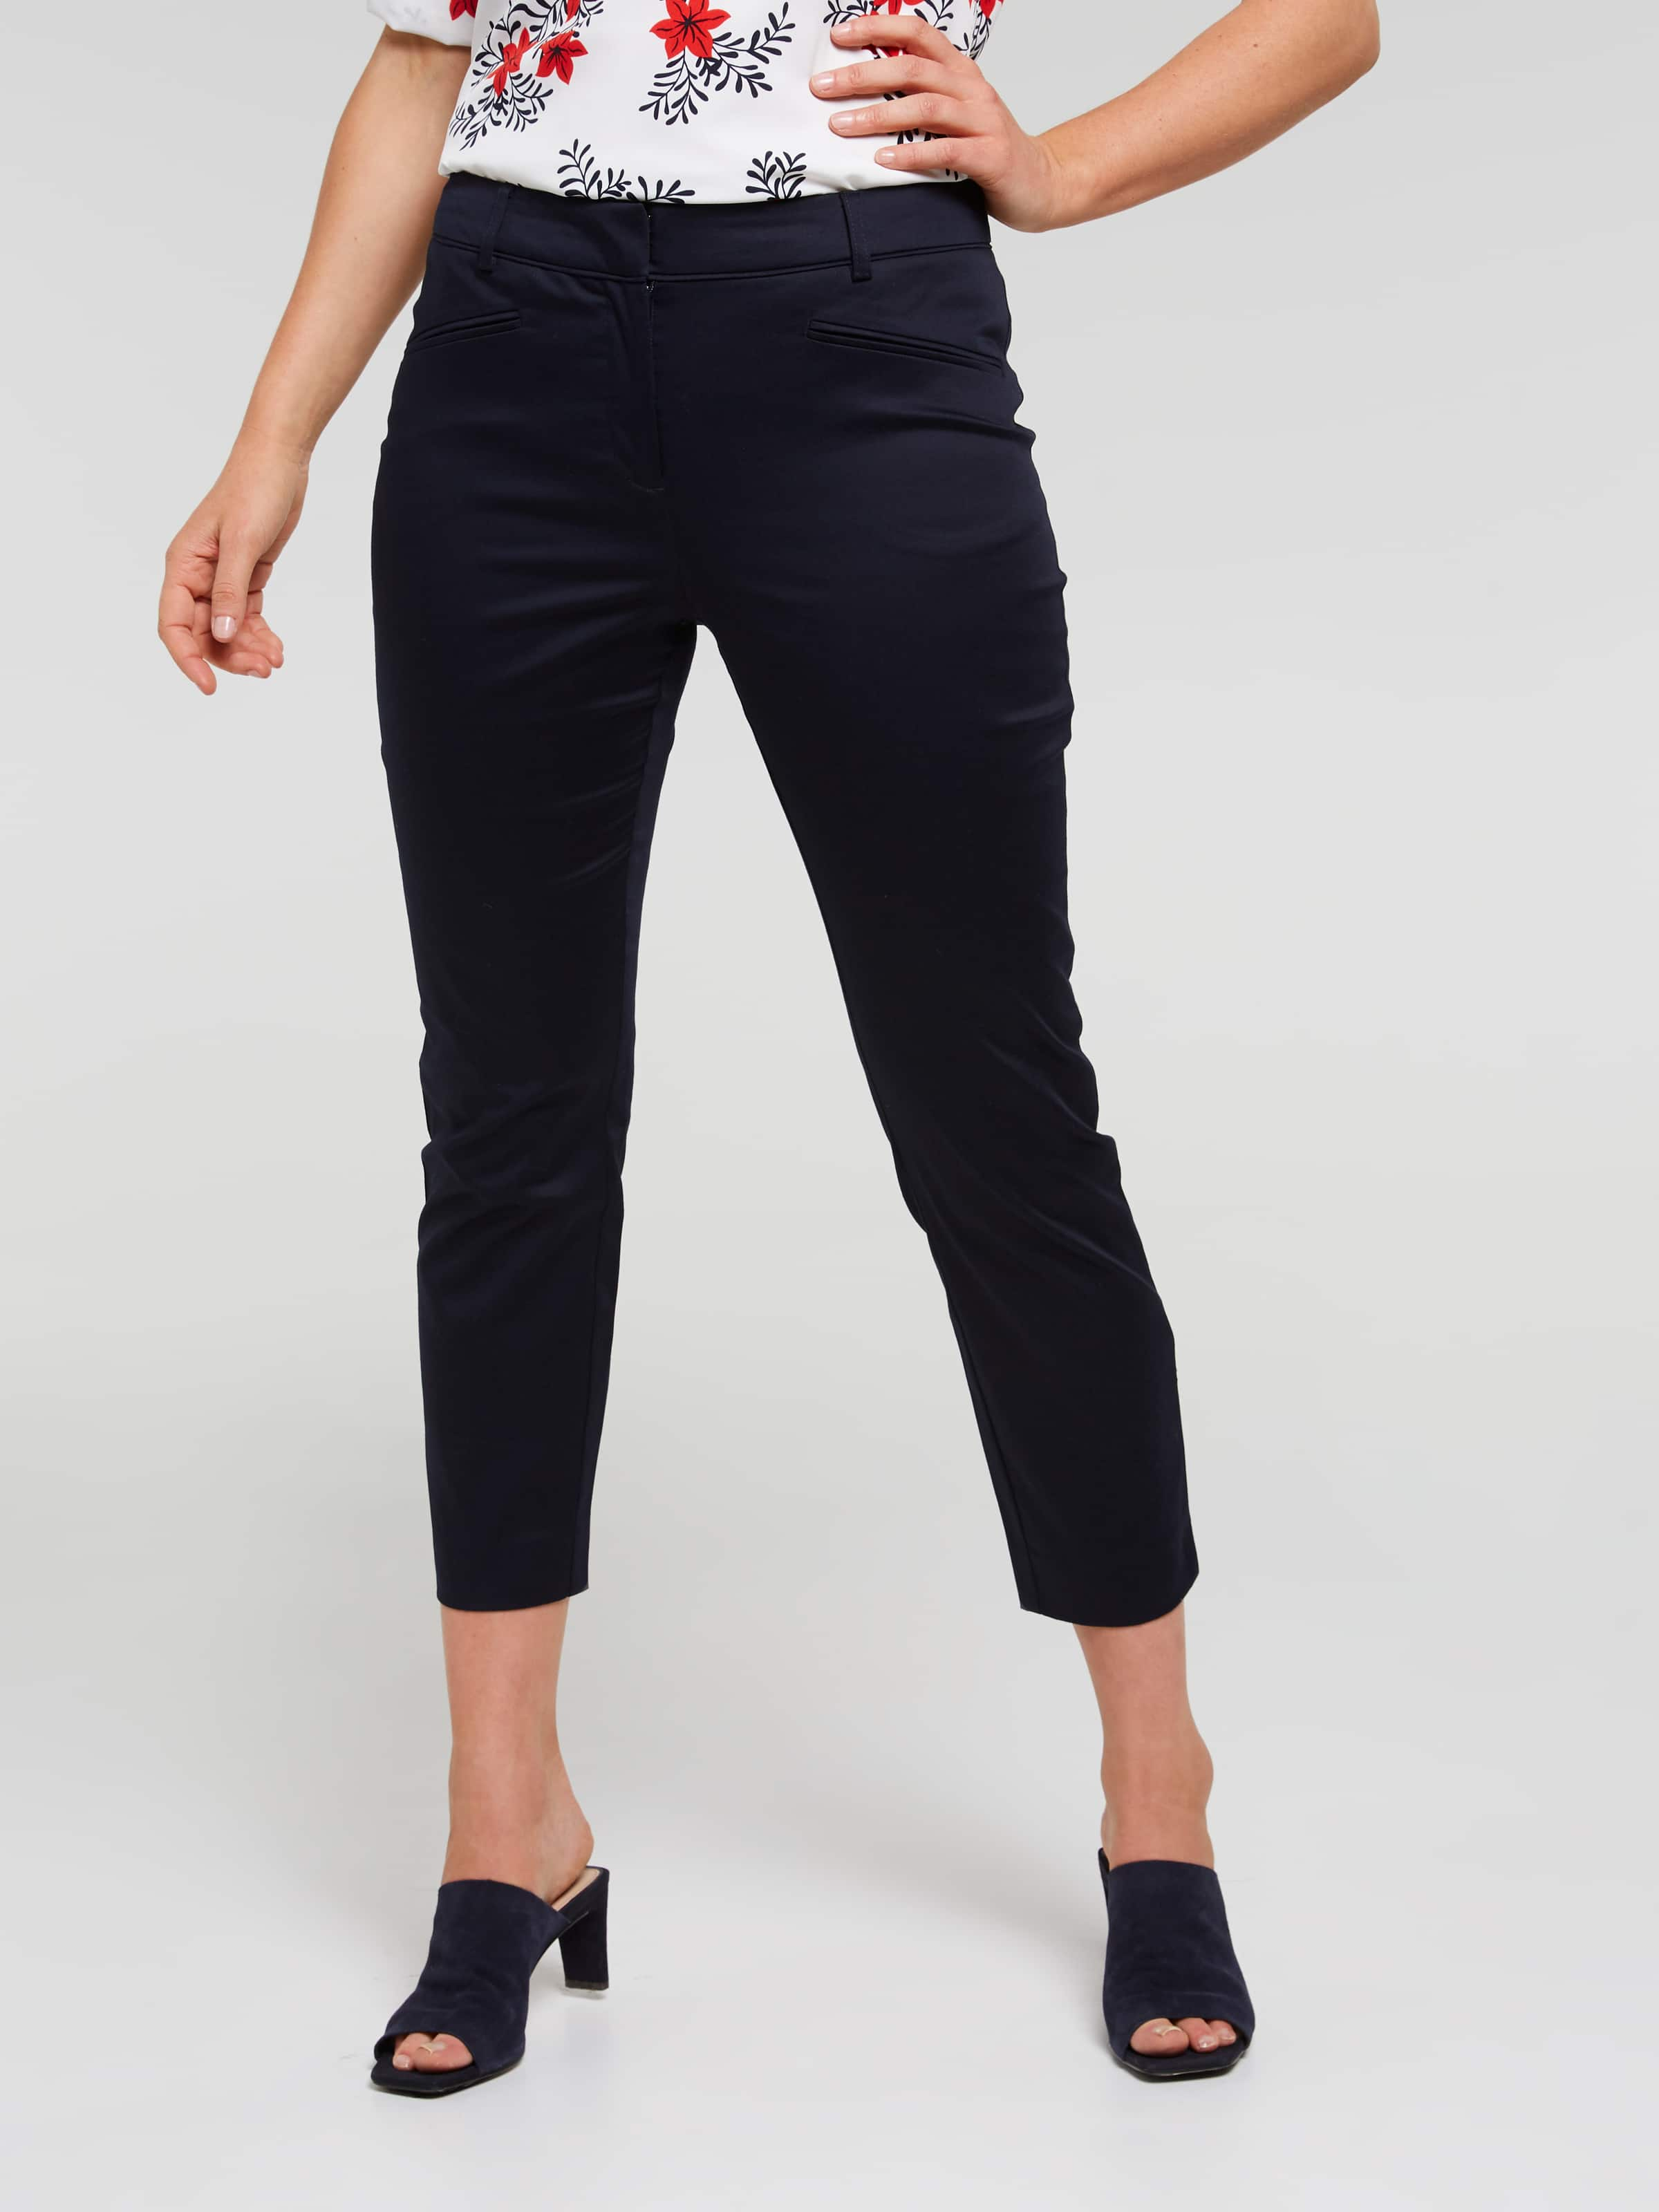 Allison Slim 7/8 Sateen Pant